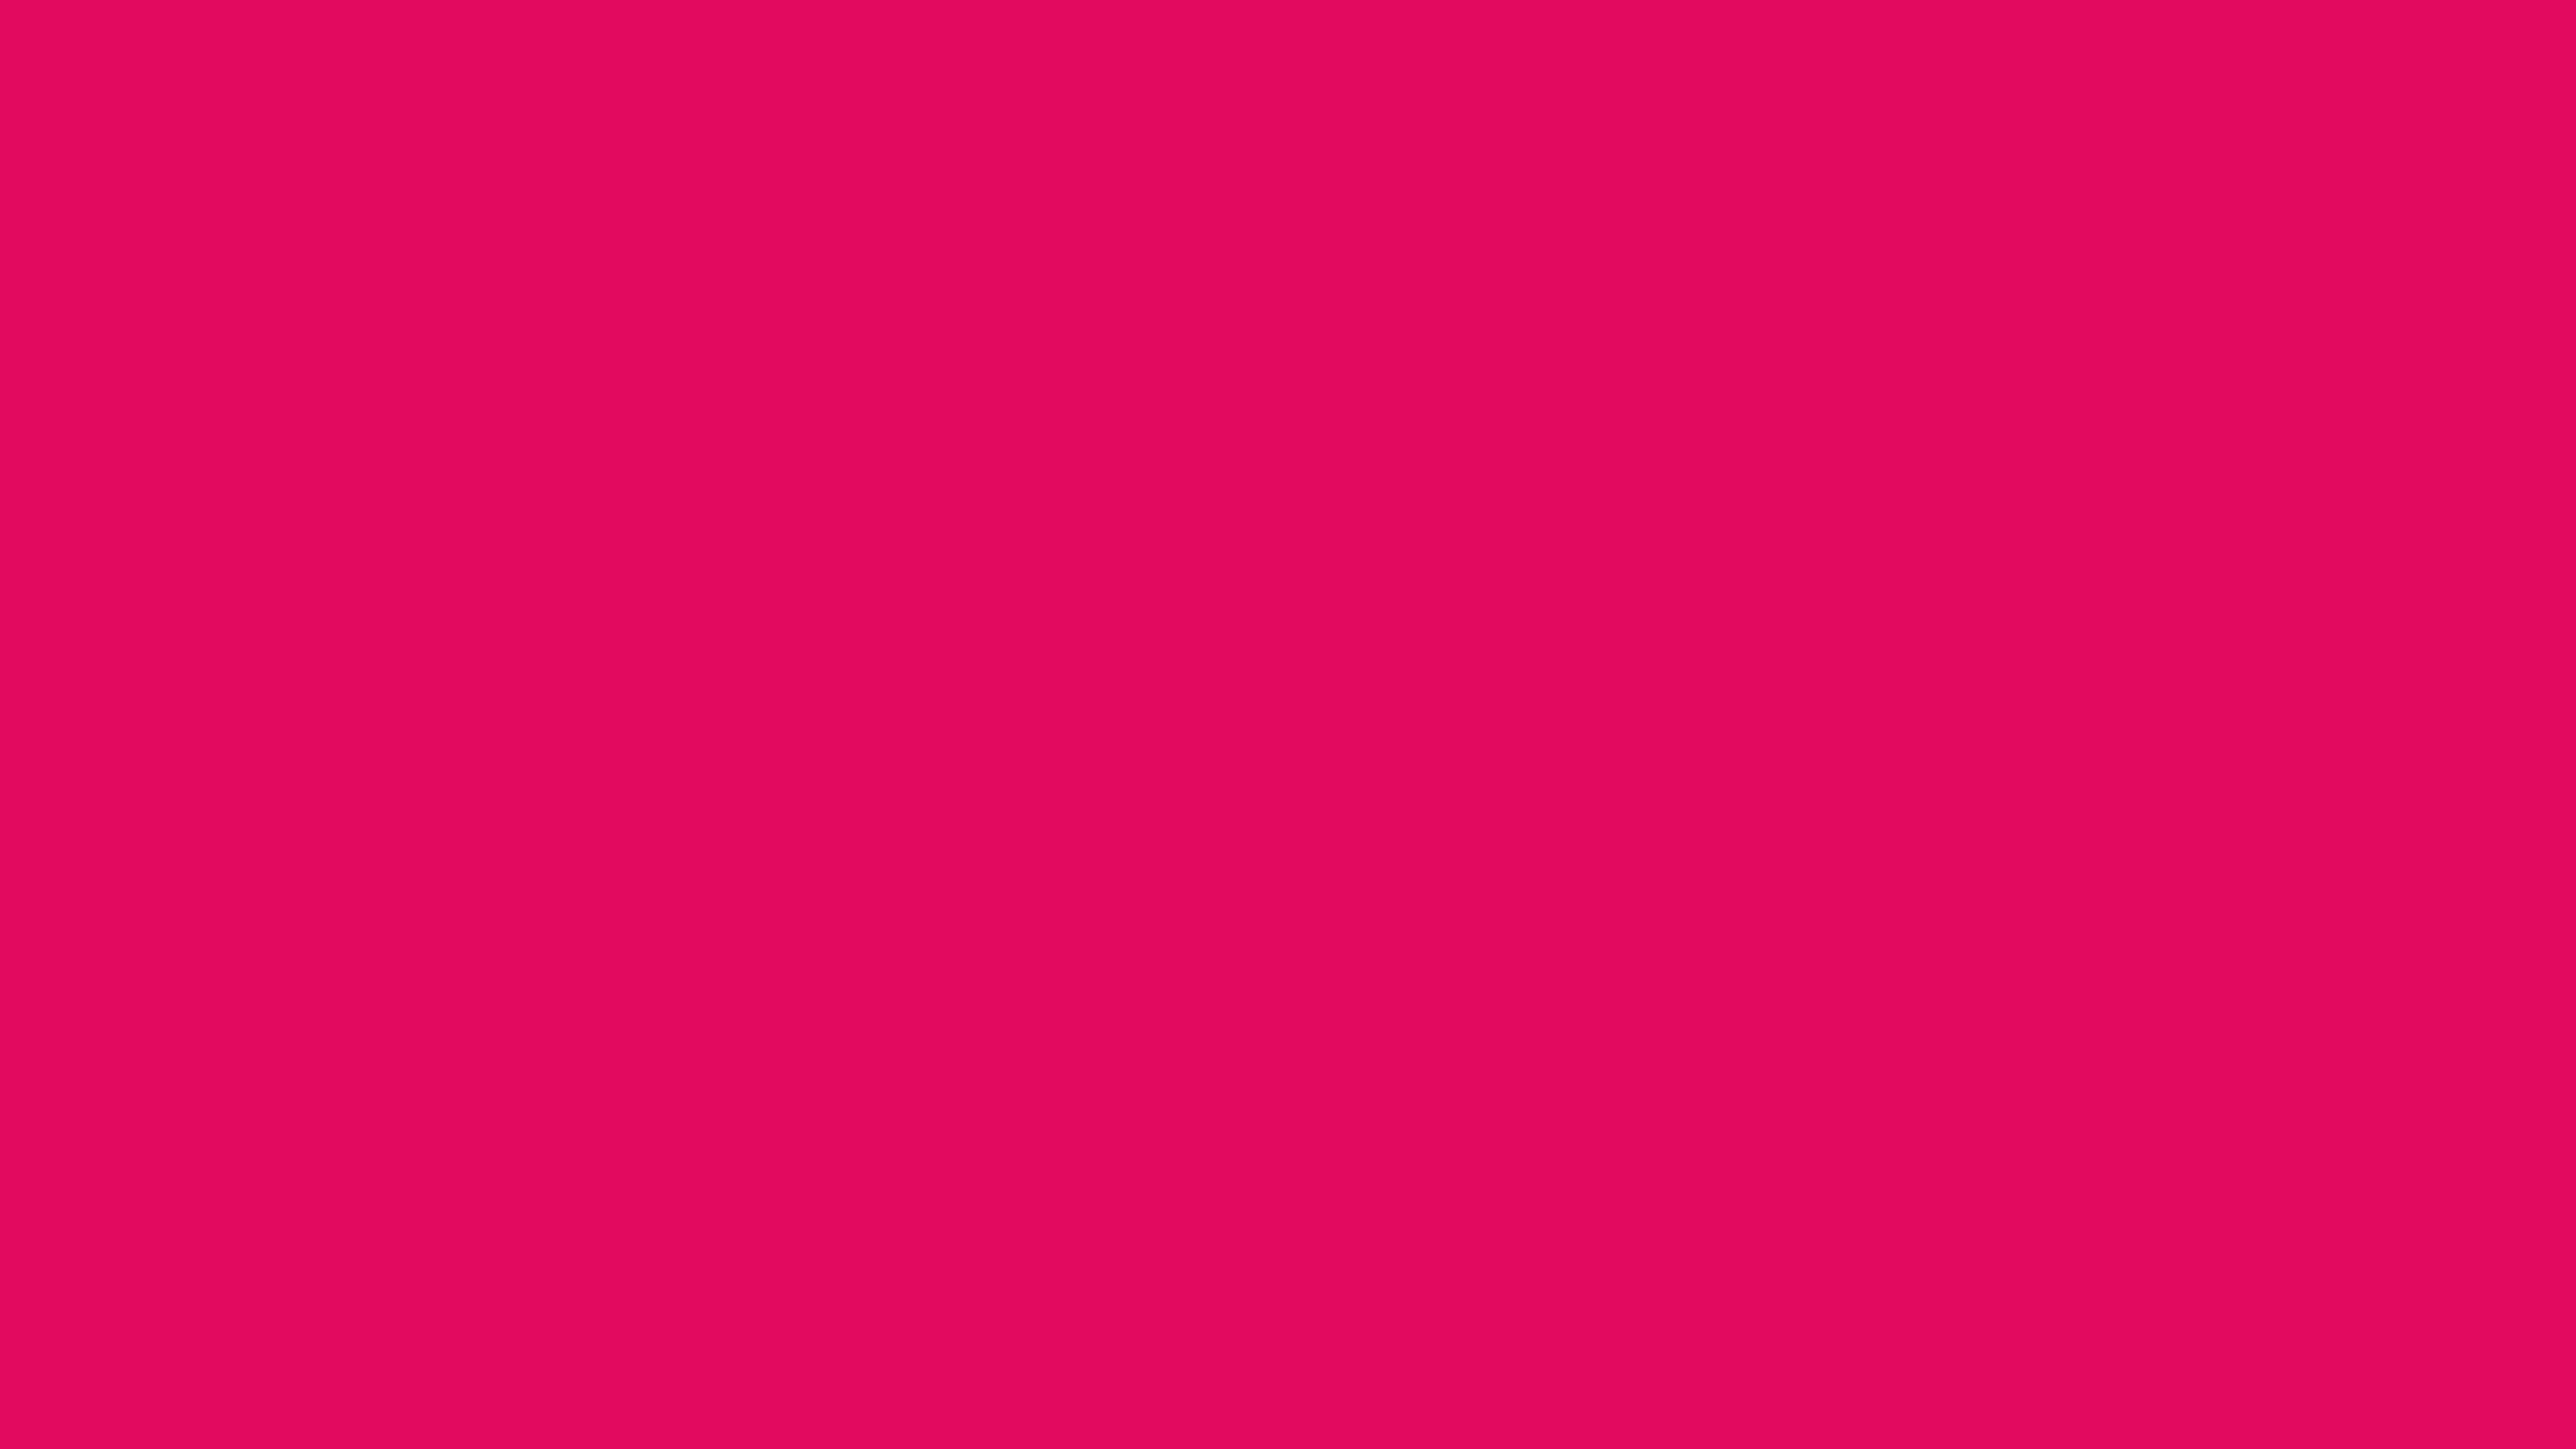 5120x2880 Raspberry Solid Color Background